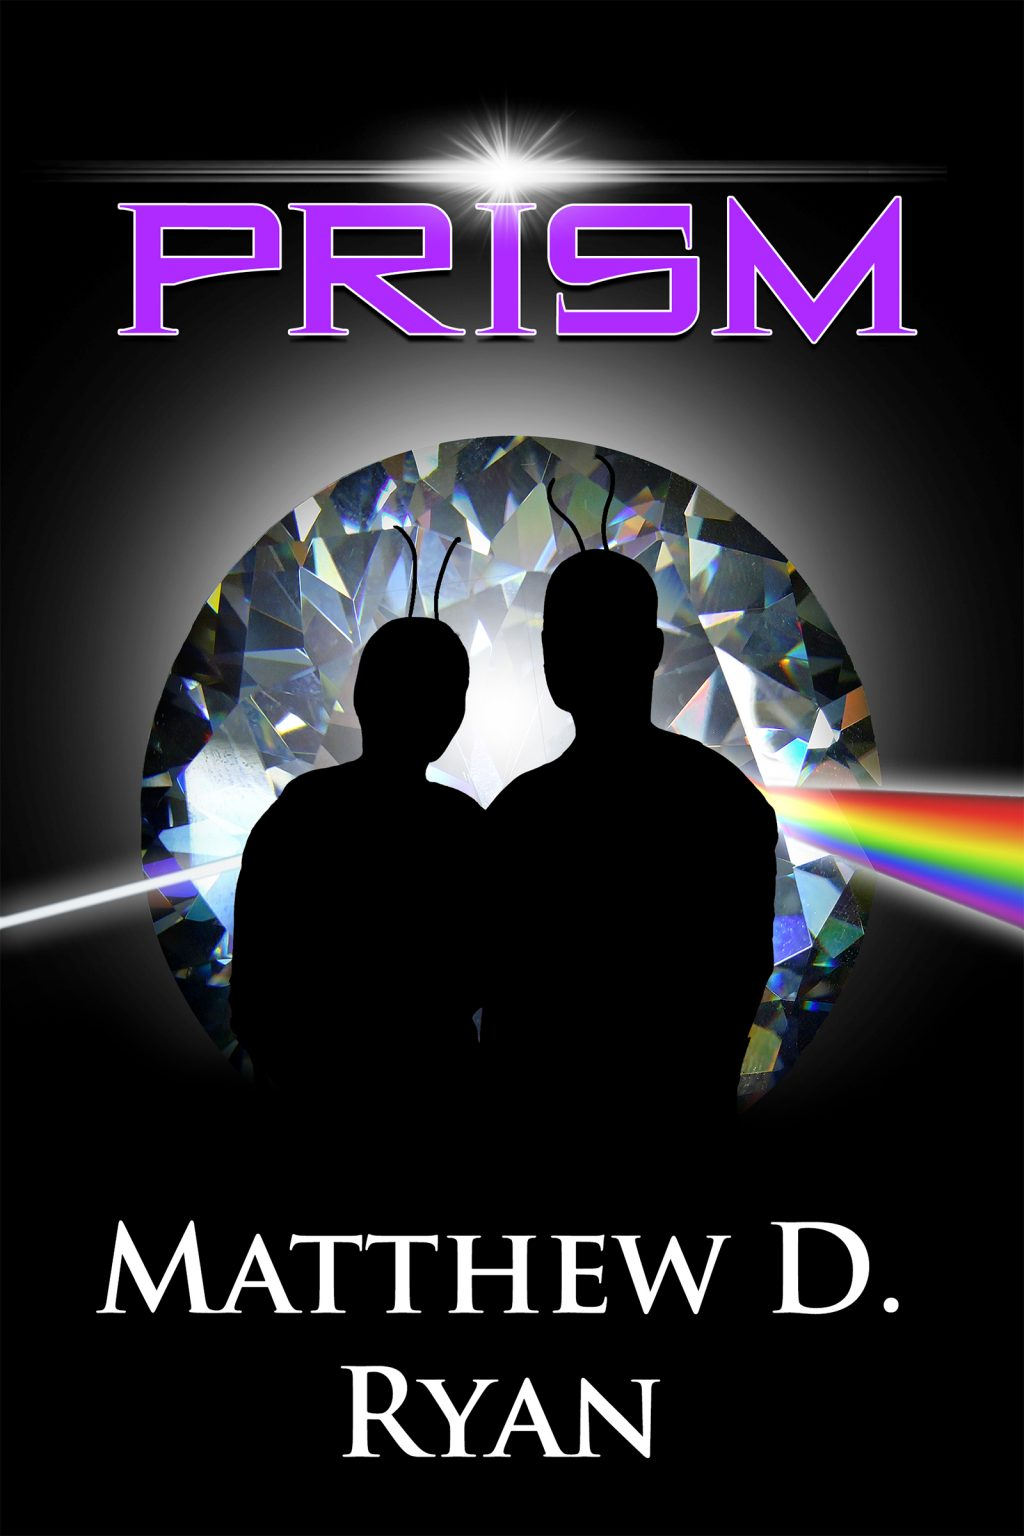 Prism by Matthew D. Ryan